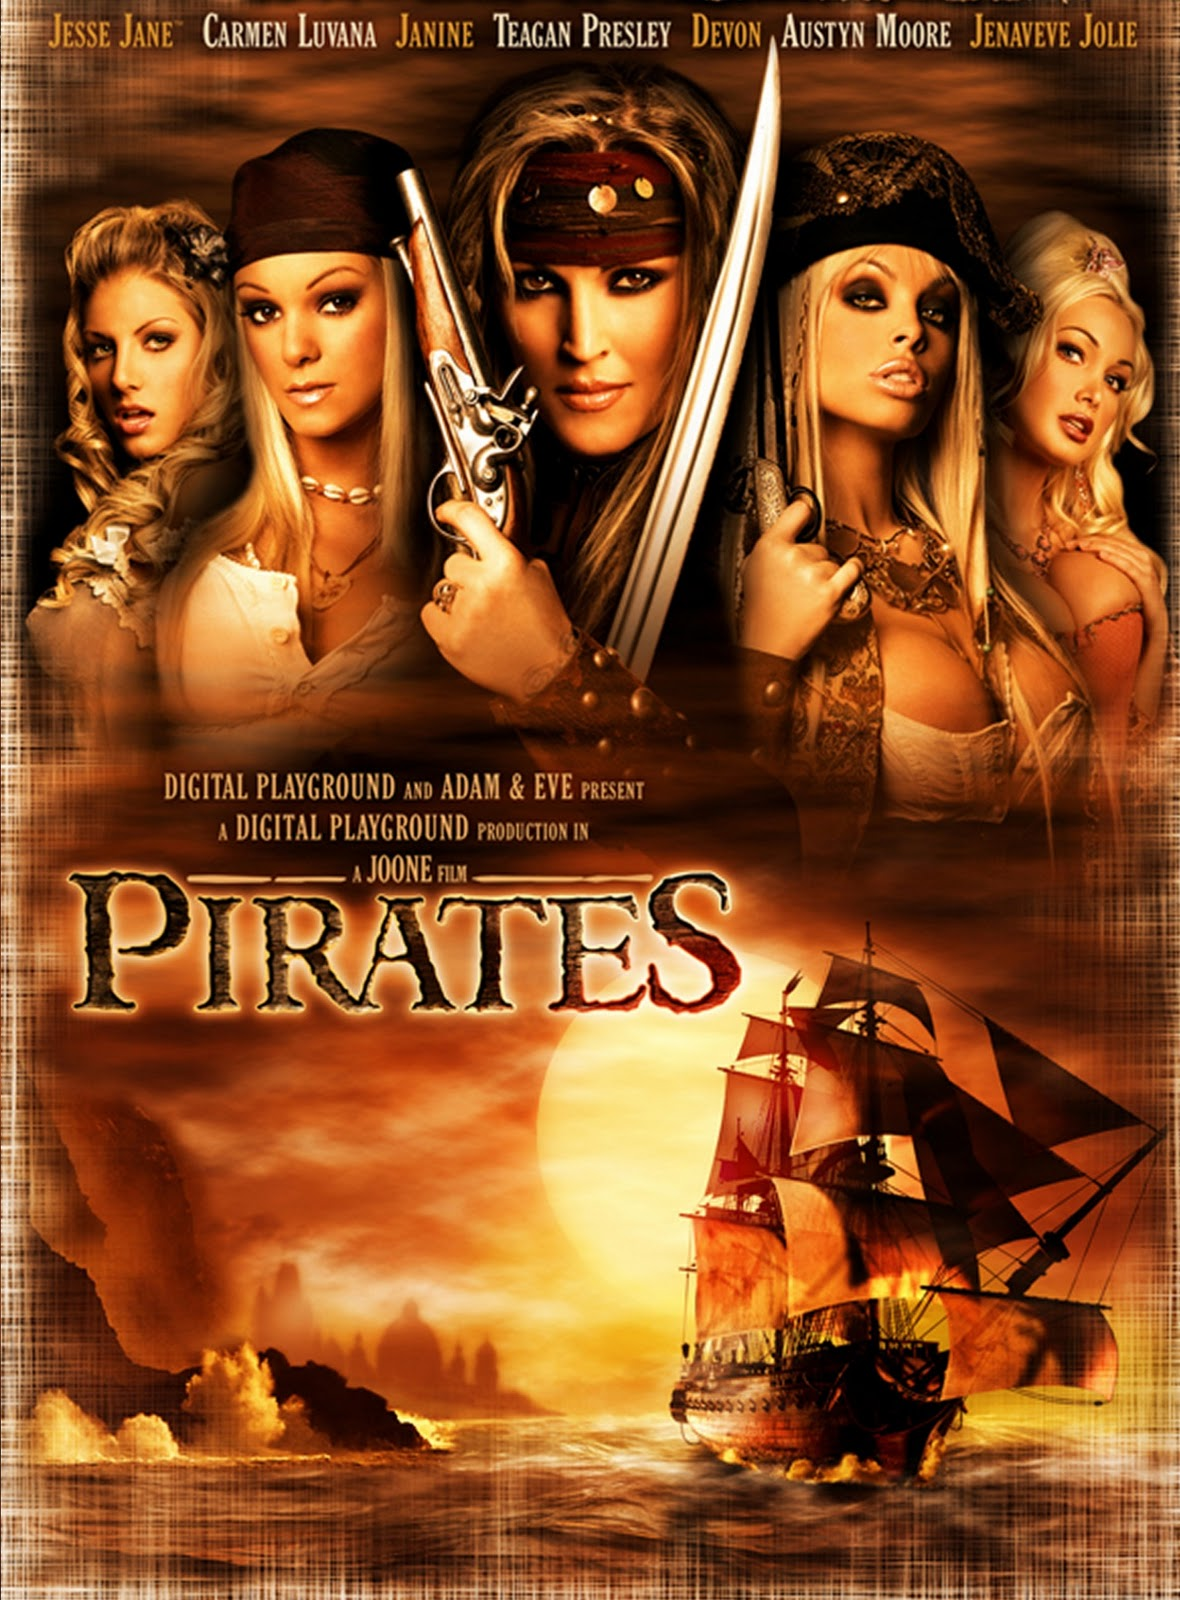 Pirates2 pornhub sexy image pics anime videos